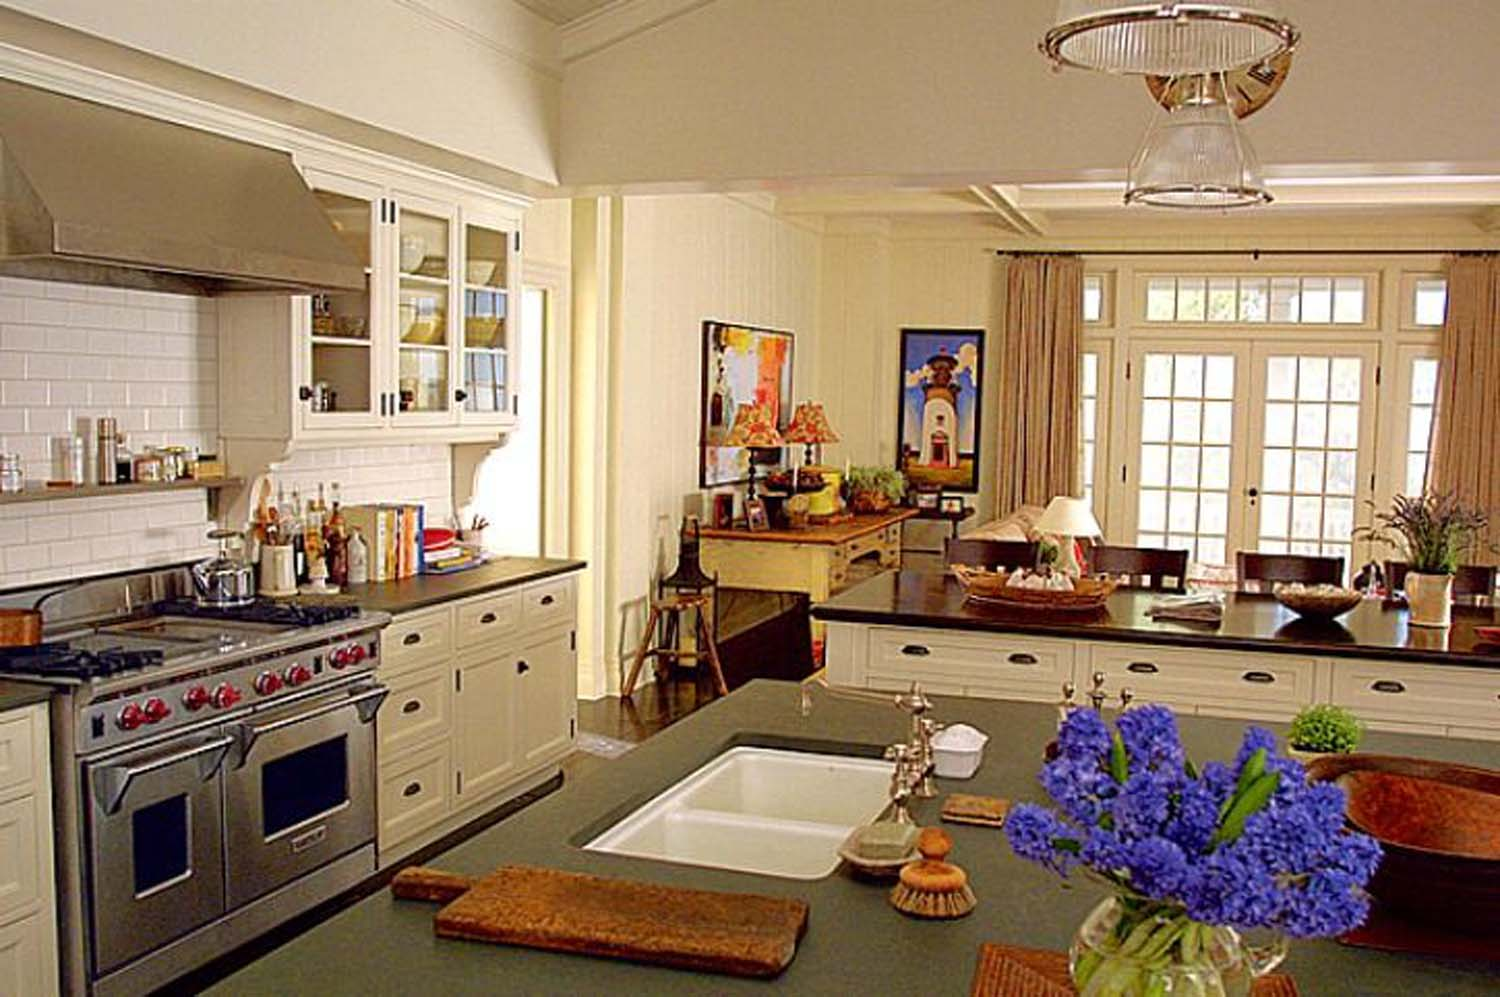 Somethings Gotta Give Kitchen  | Image:    Architectural Digest